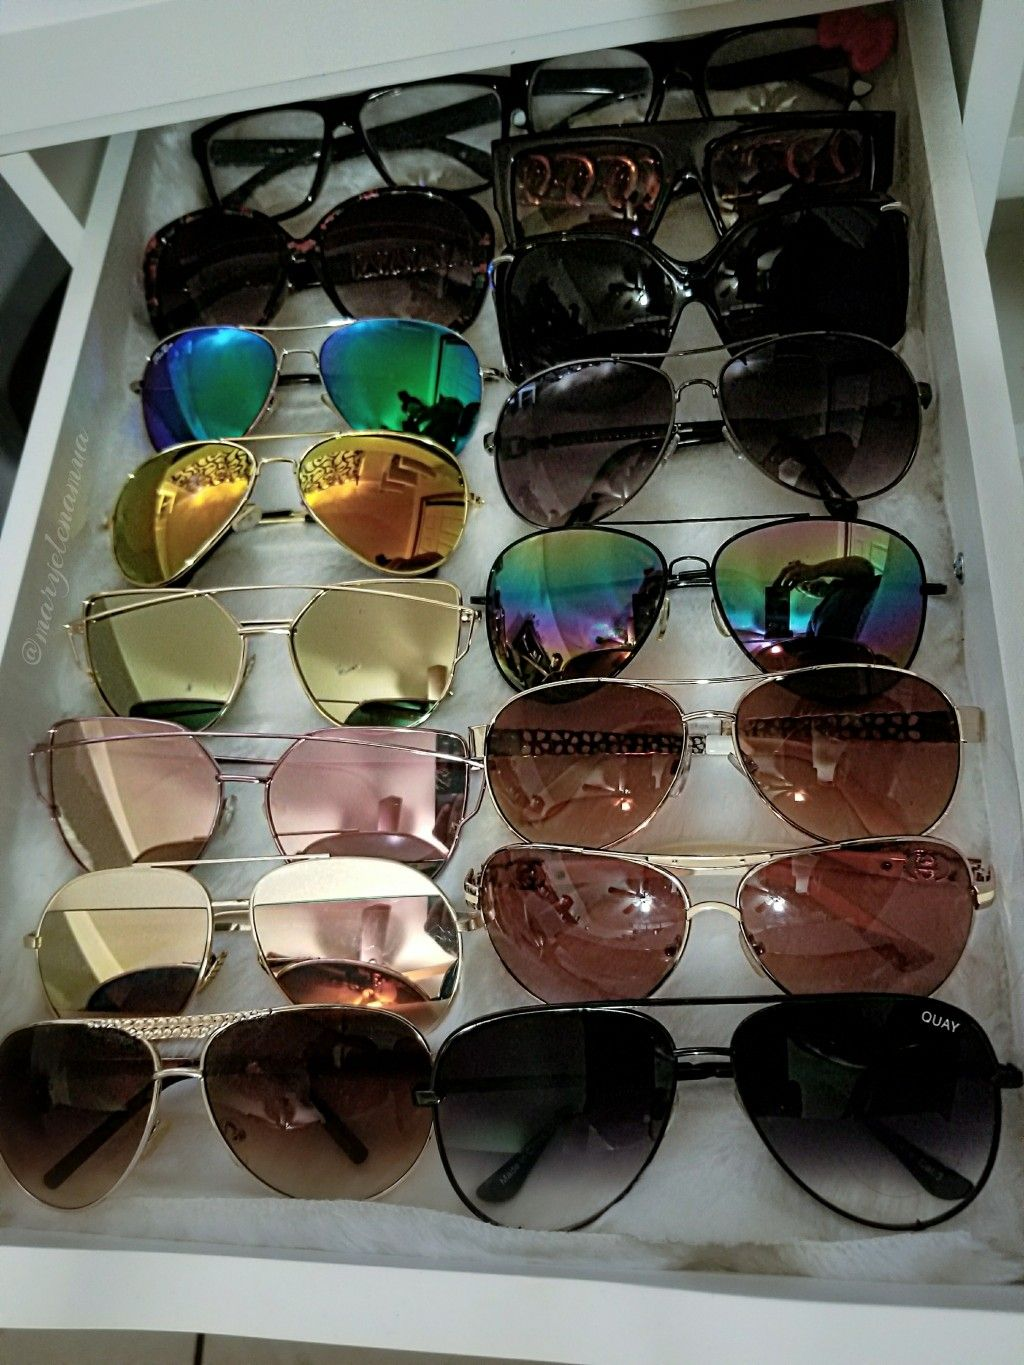 Organized My Sunglasses In My Alex Drawer Alexdrawer Ikea Sunglasses Organized Sunglassstorage Storage V Sunglasses Storage Alex Drawer Storage Drawers